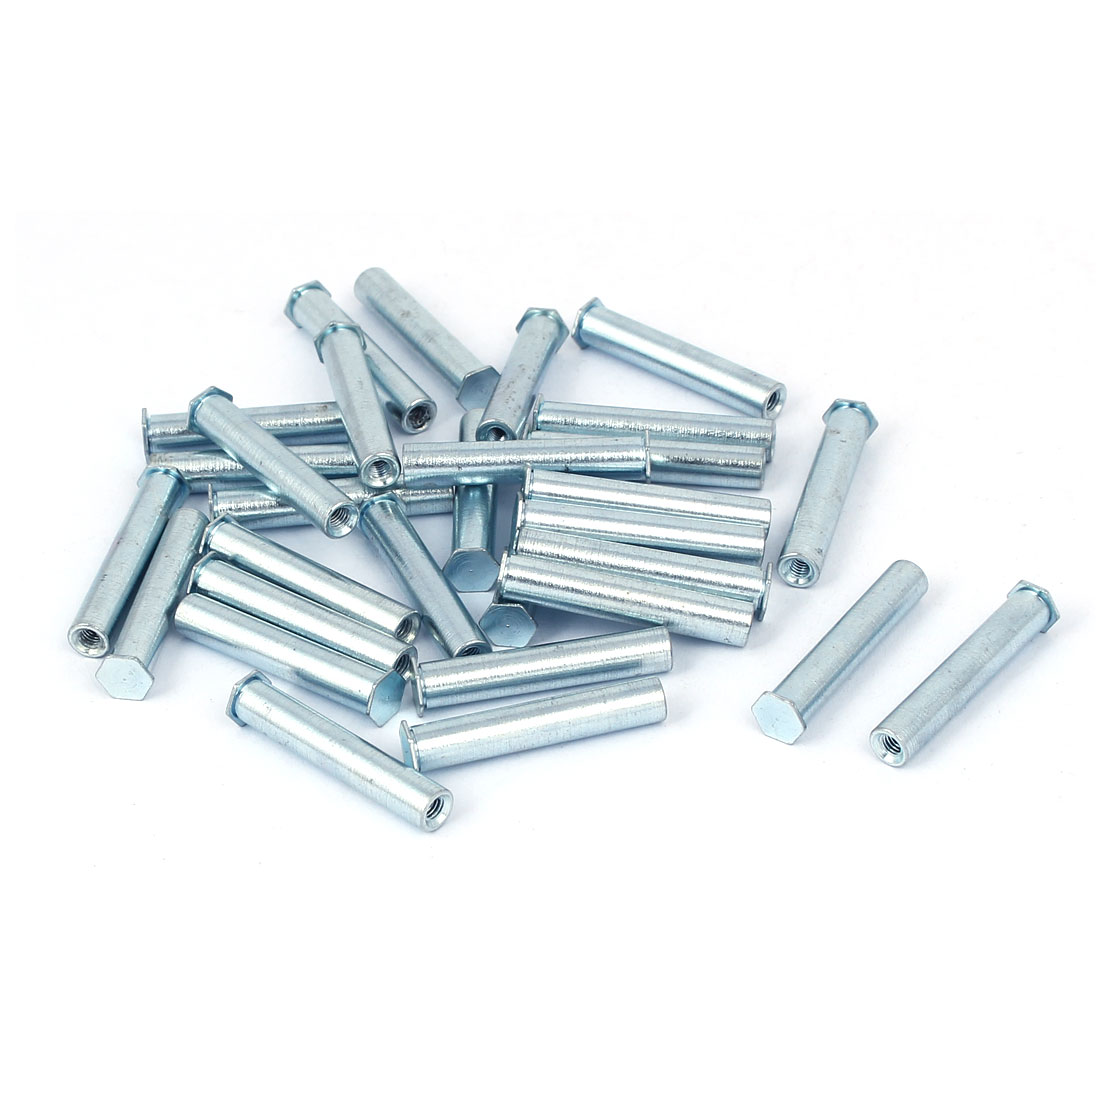 M3 x 30mm Full Thread Hex Head Blind Self Clinching Standoffs 30 Pcs